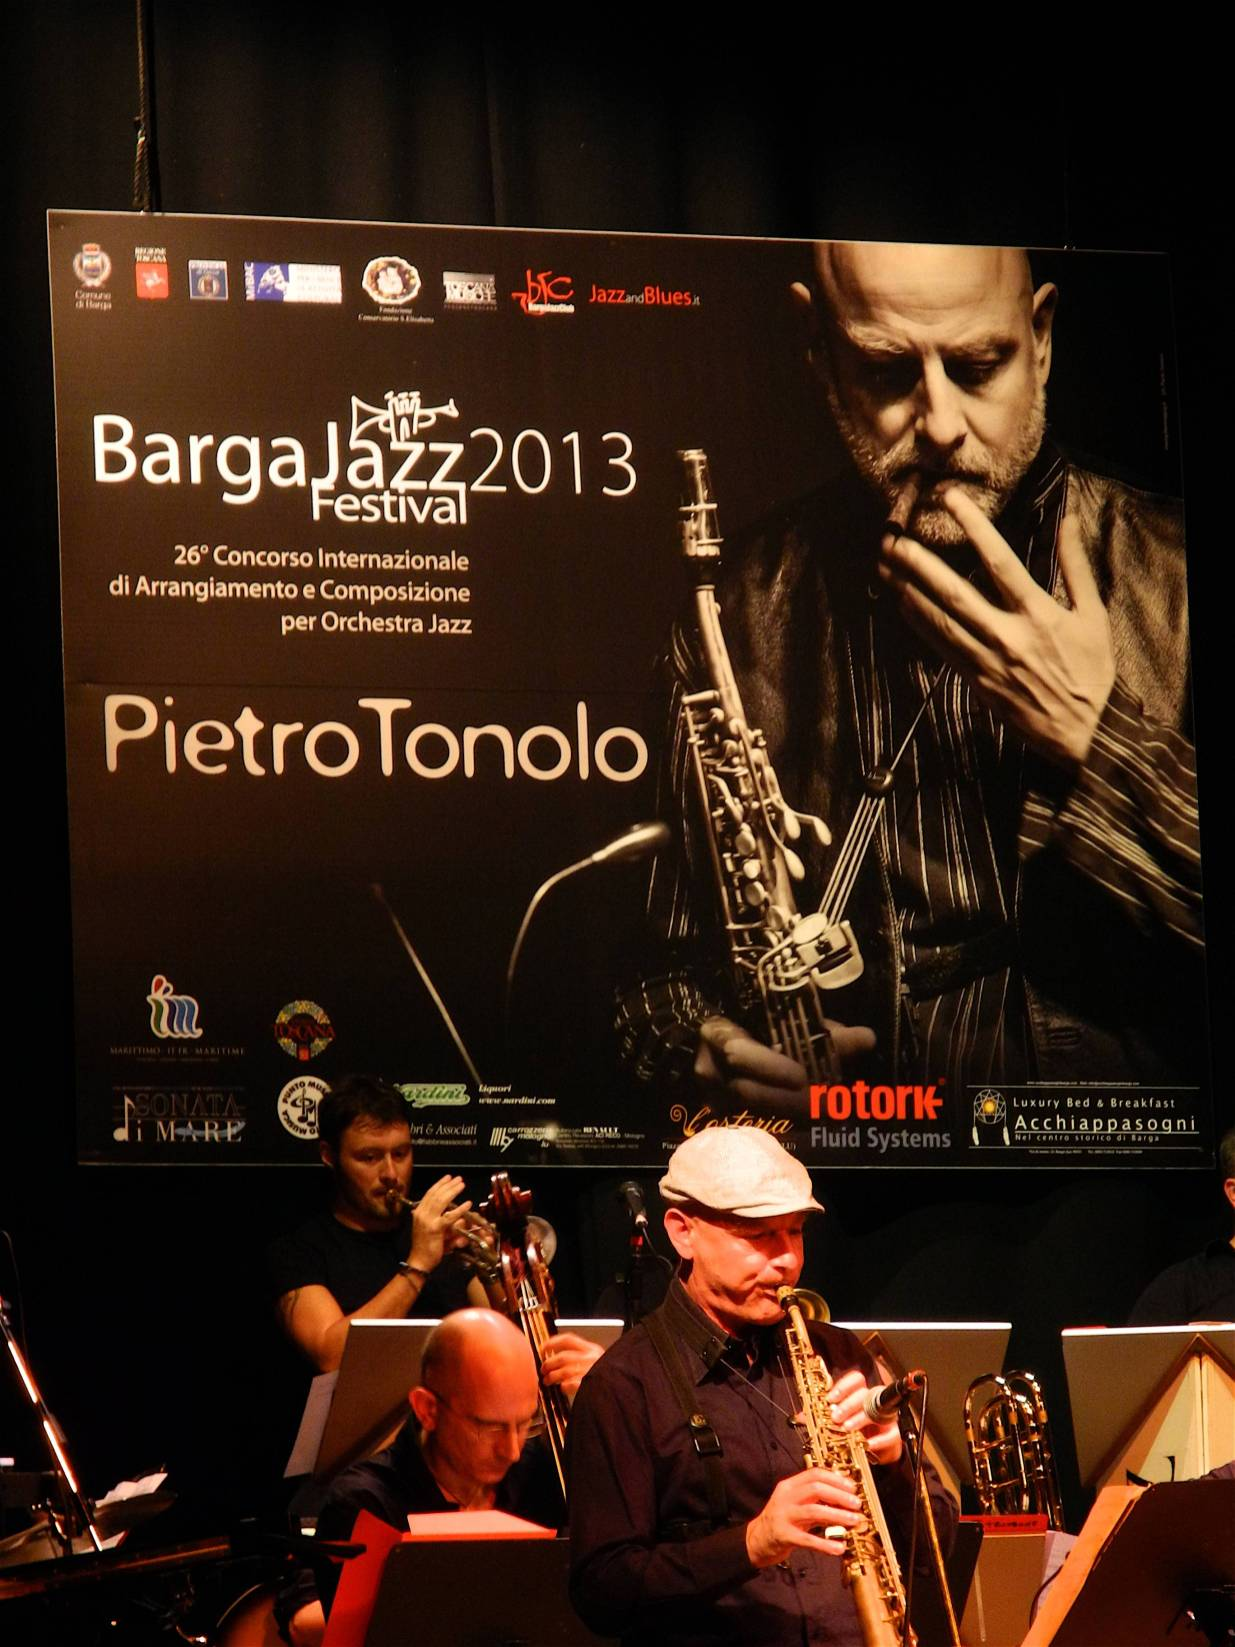 Barga Jazz 2013